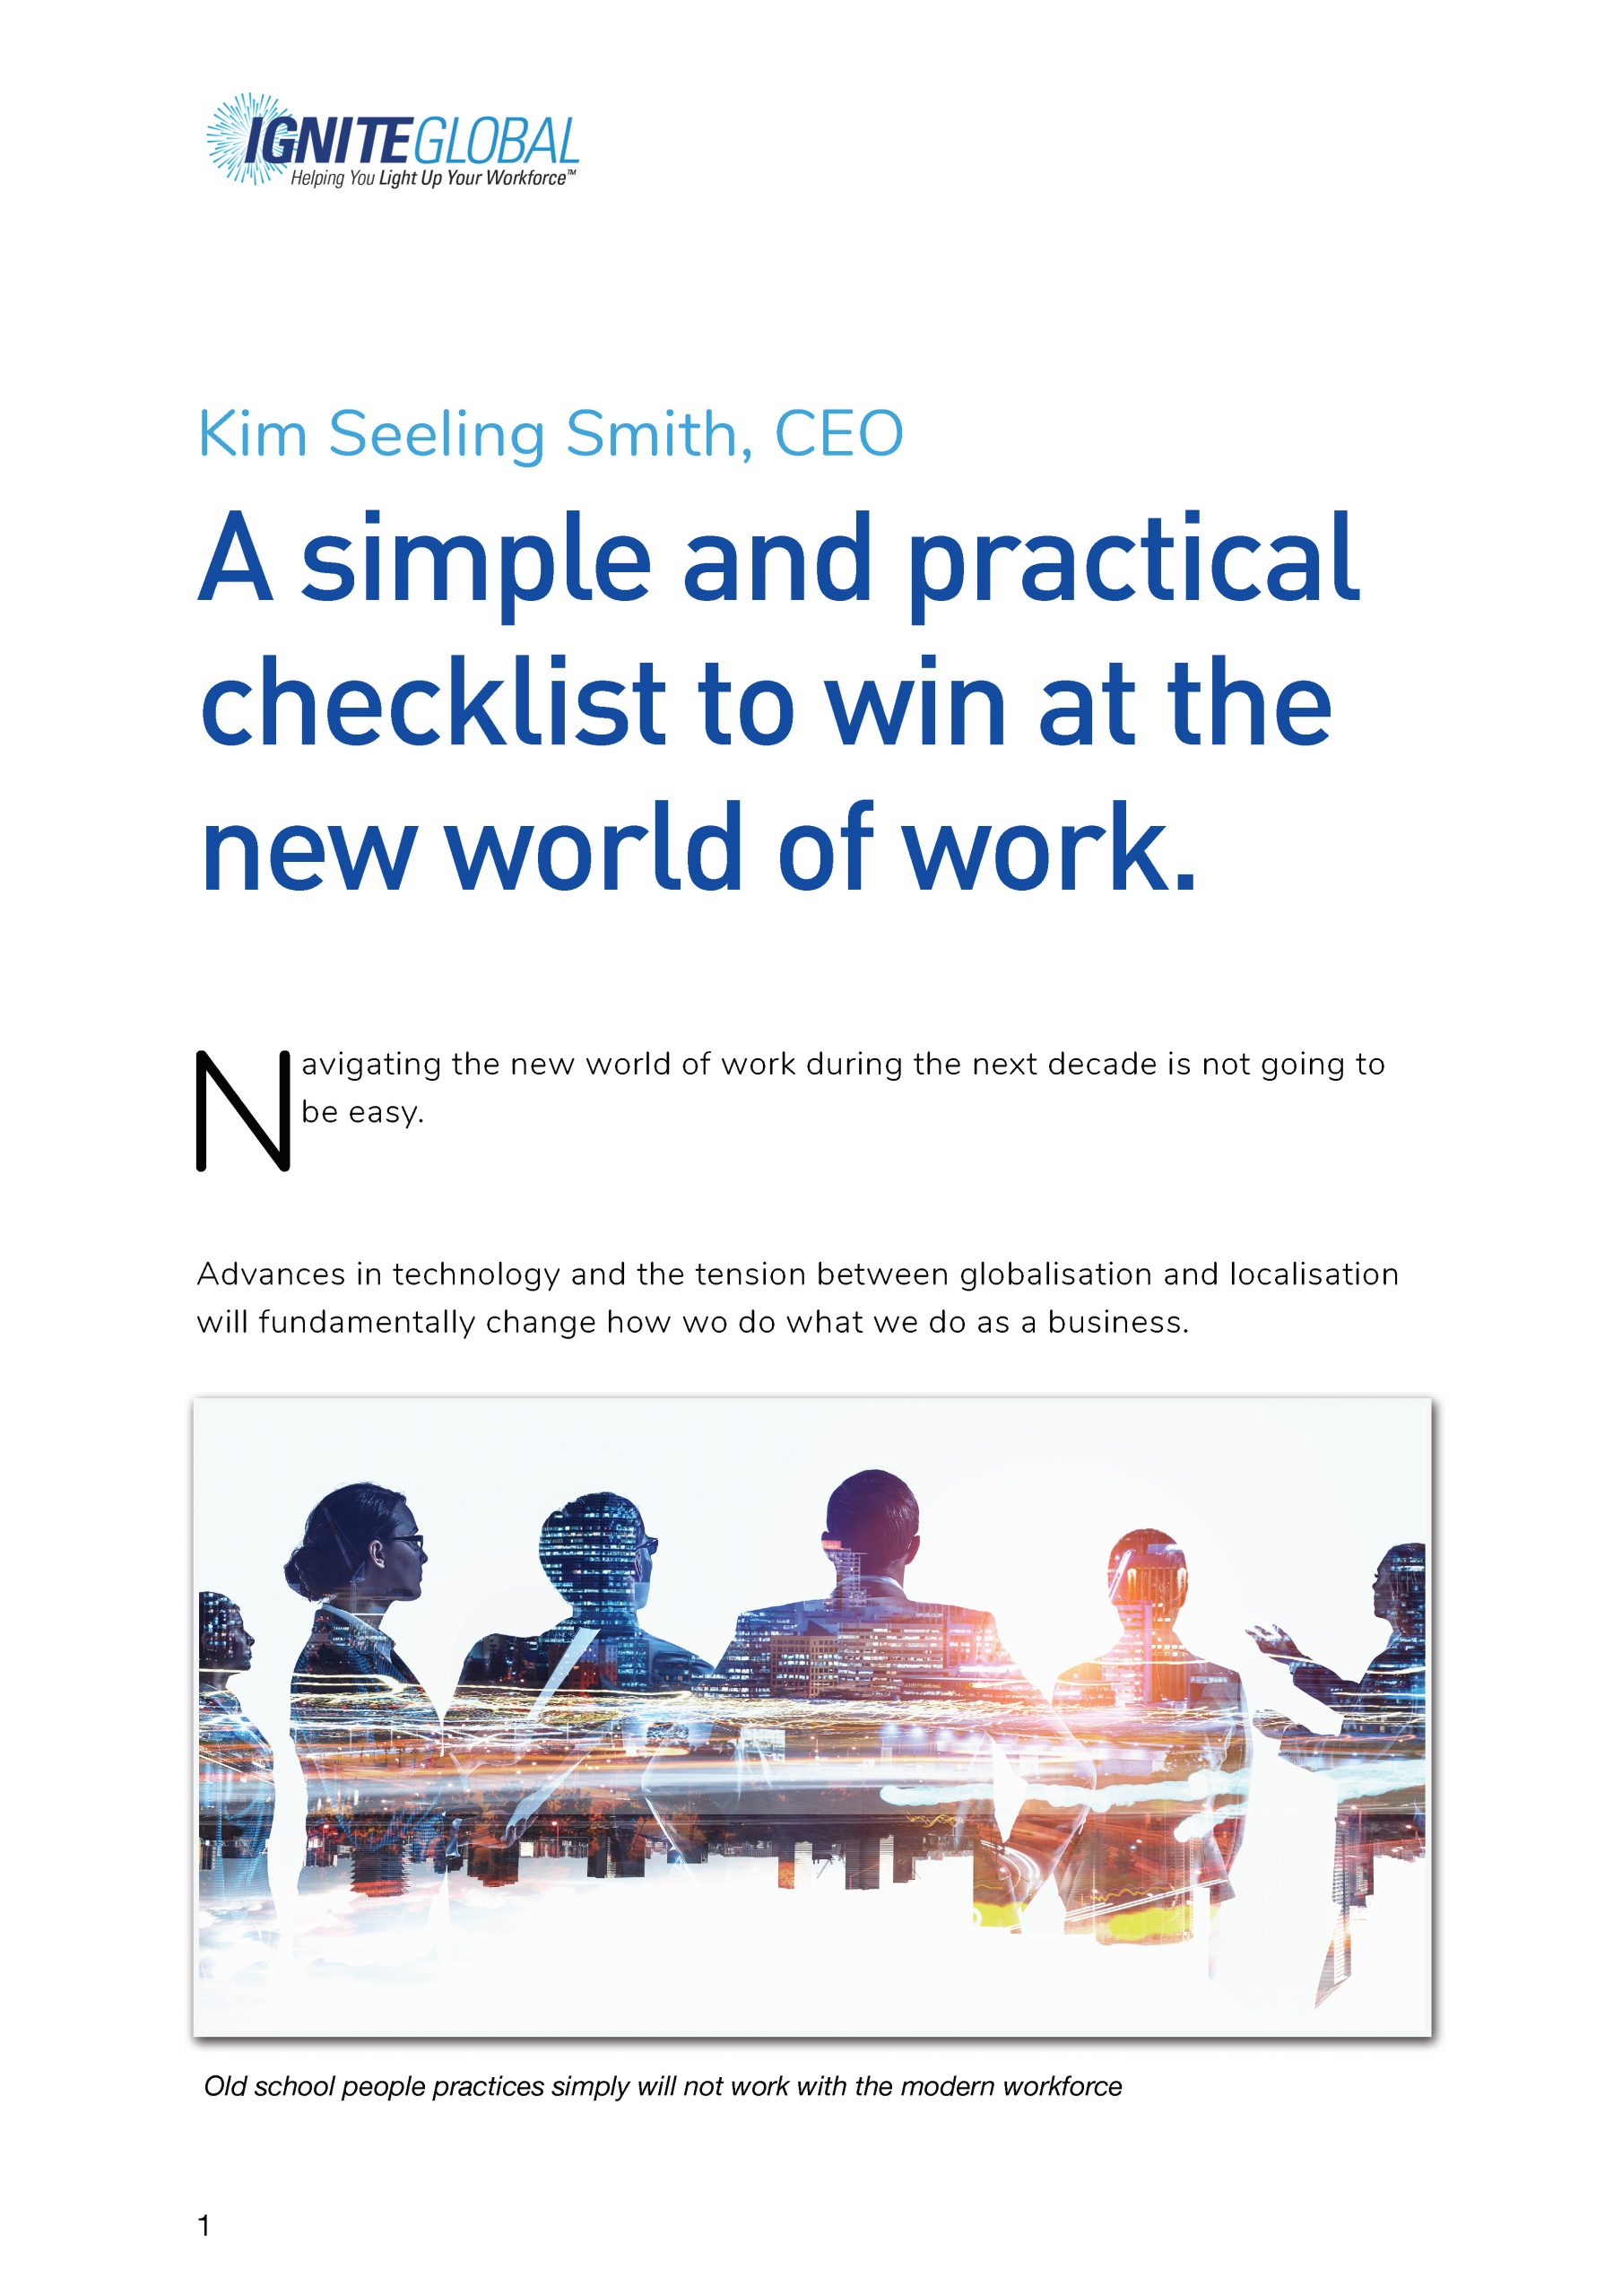 A simple and practical checklist to win at the new world of work FREE DOWNLOAD